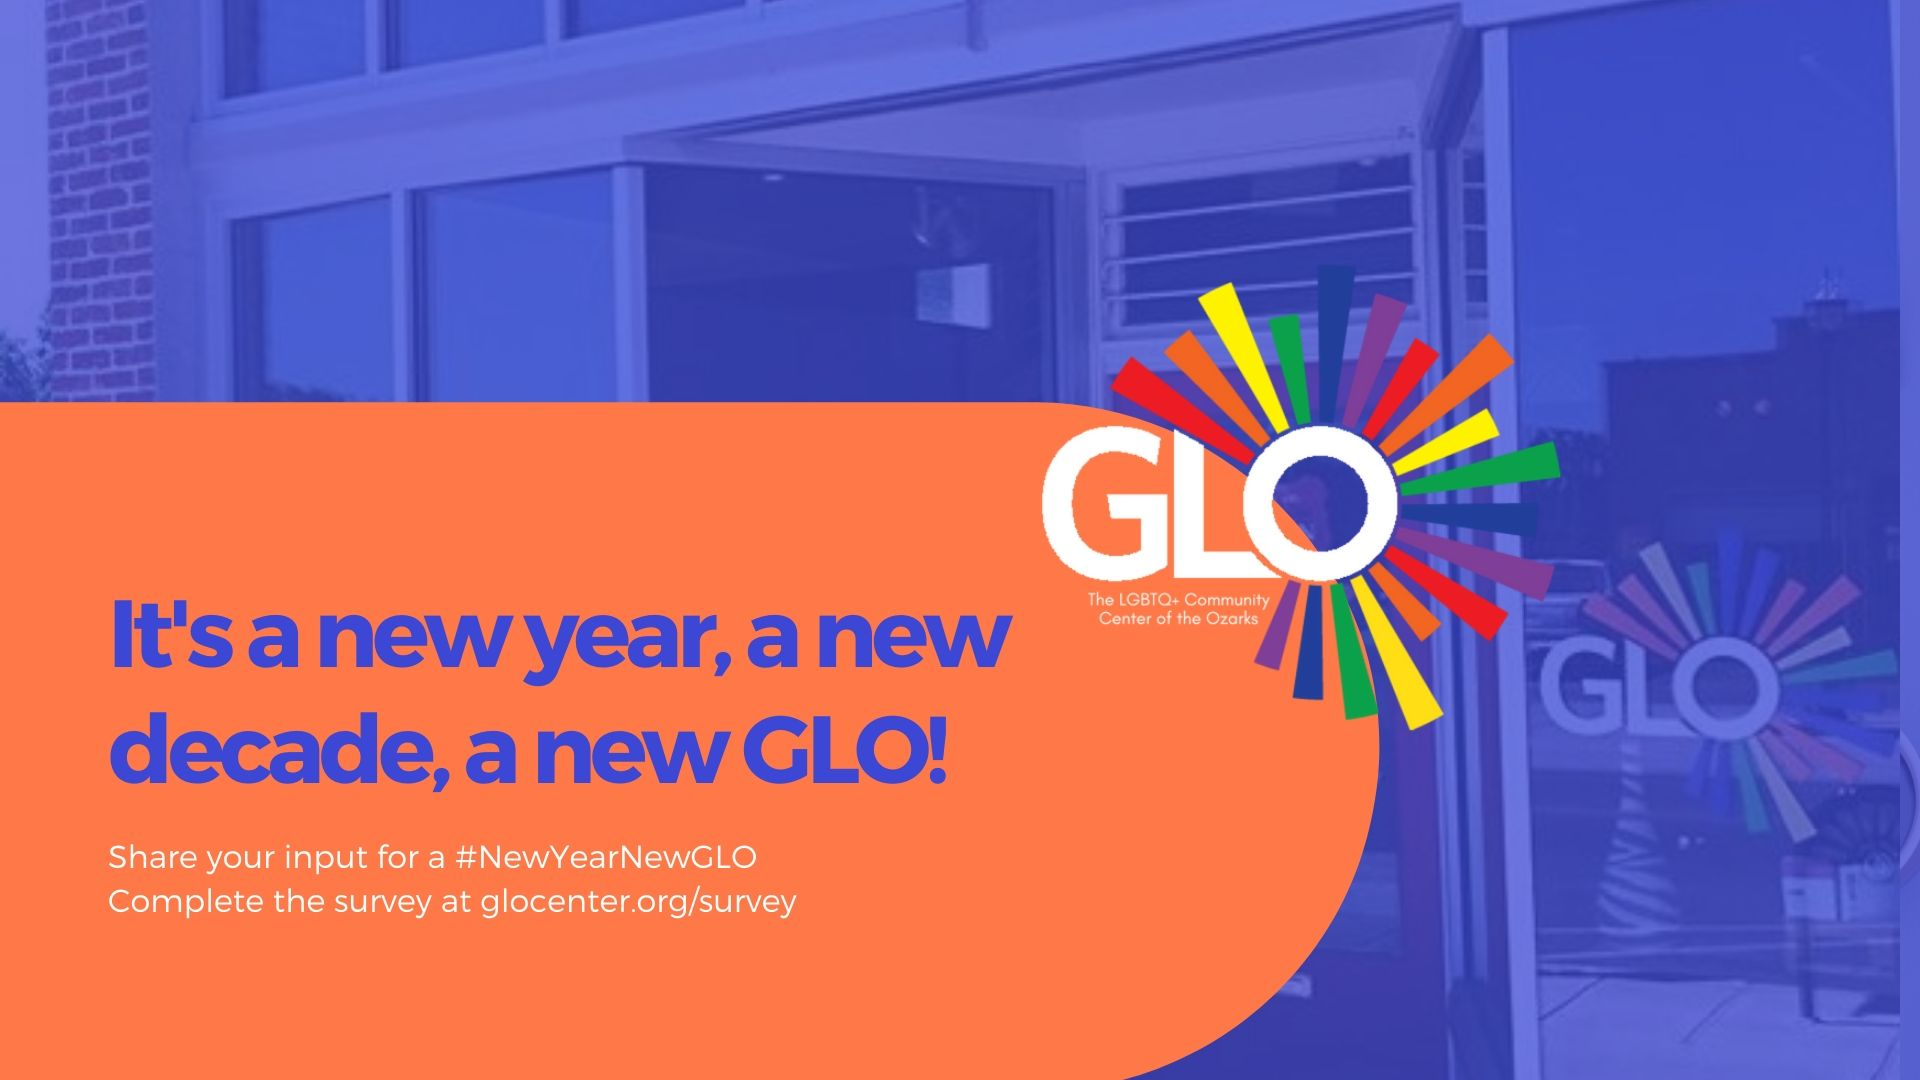 It's a new year, new decade, new GLO. Complete our community survey now at glocenter.org/survey